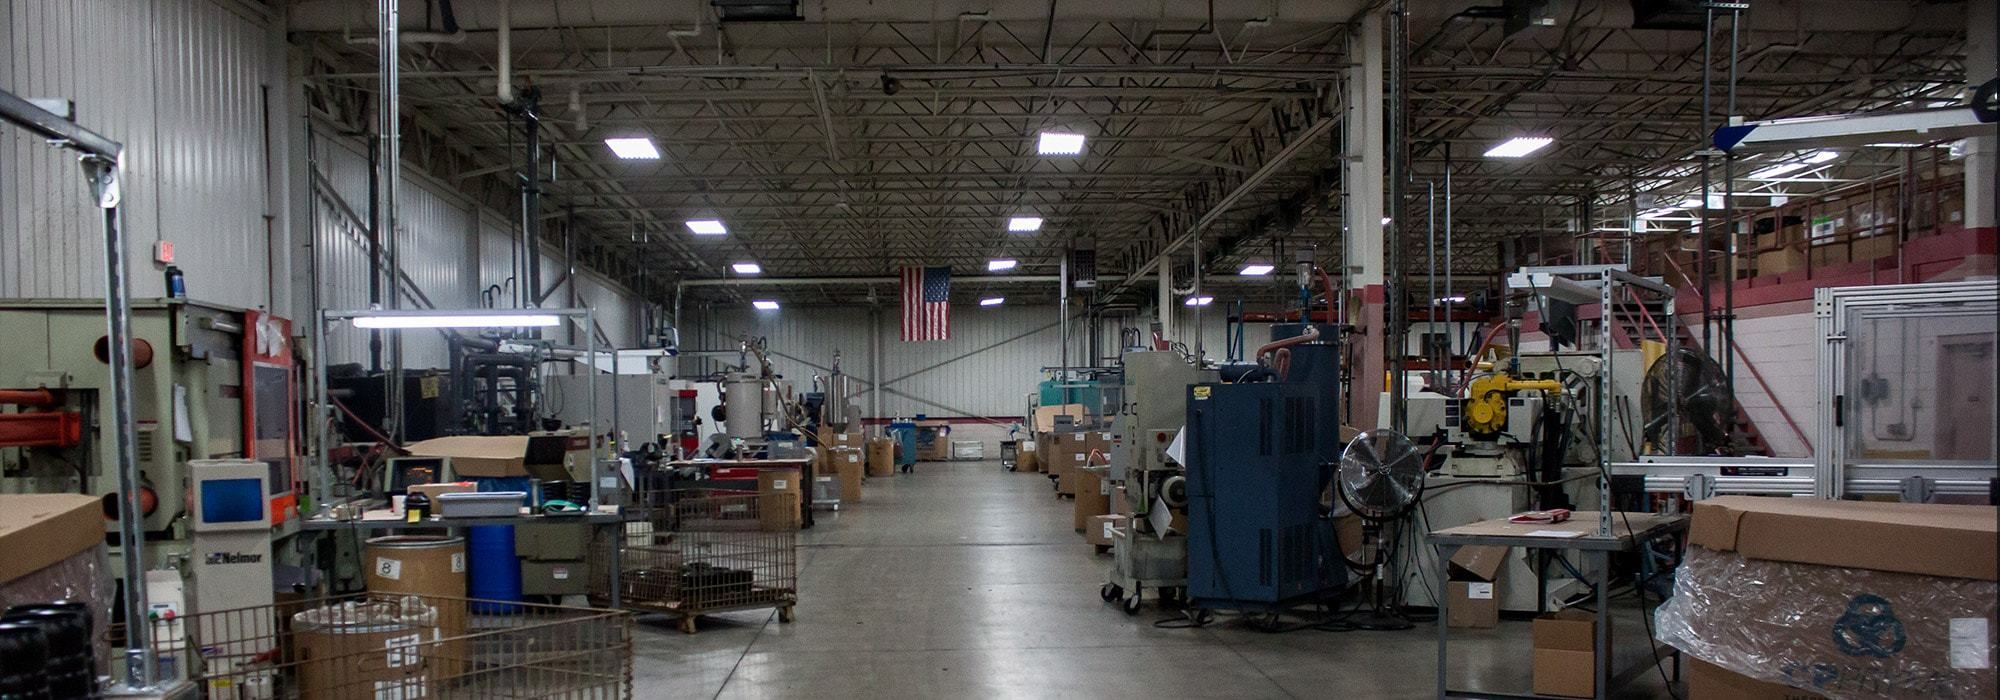 Plastic Manufacturing Facility in Hartland, Wisconsin